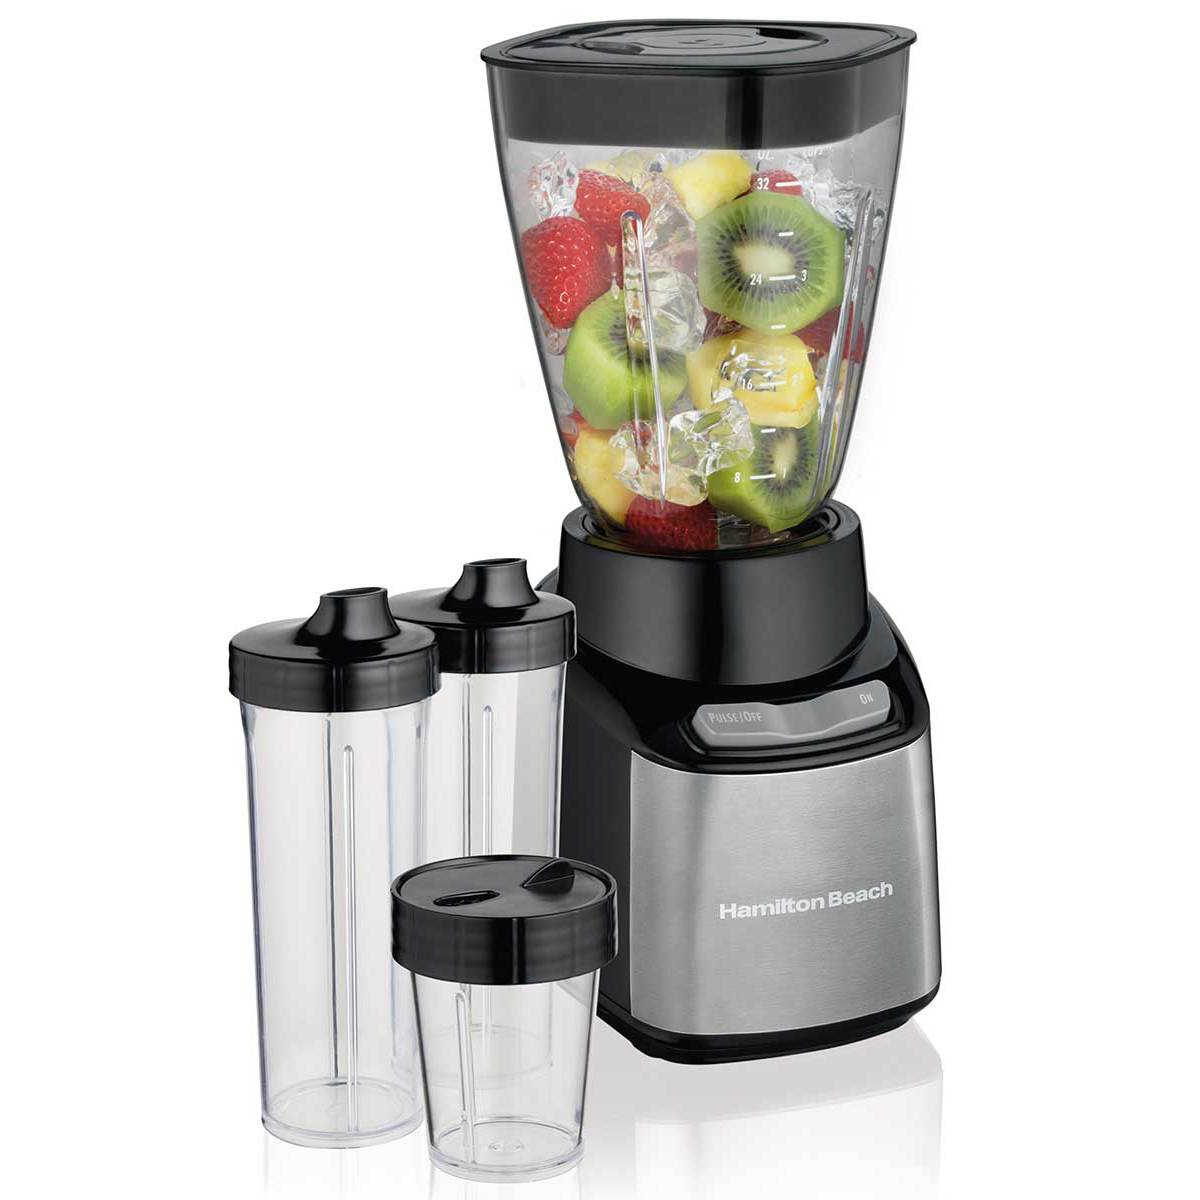 Stay or Go® Blender (52400)